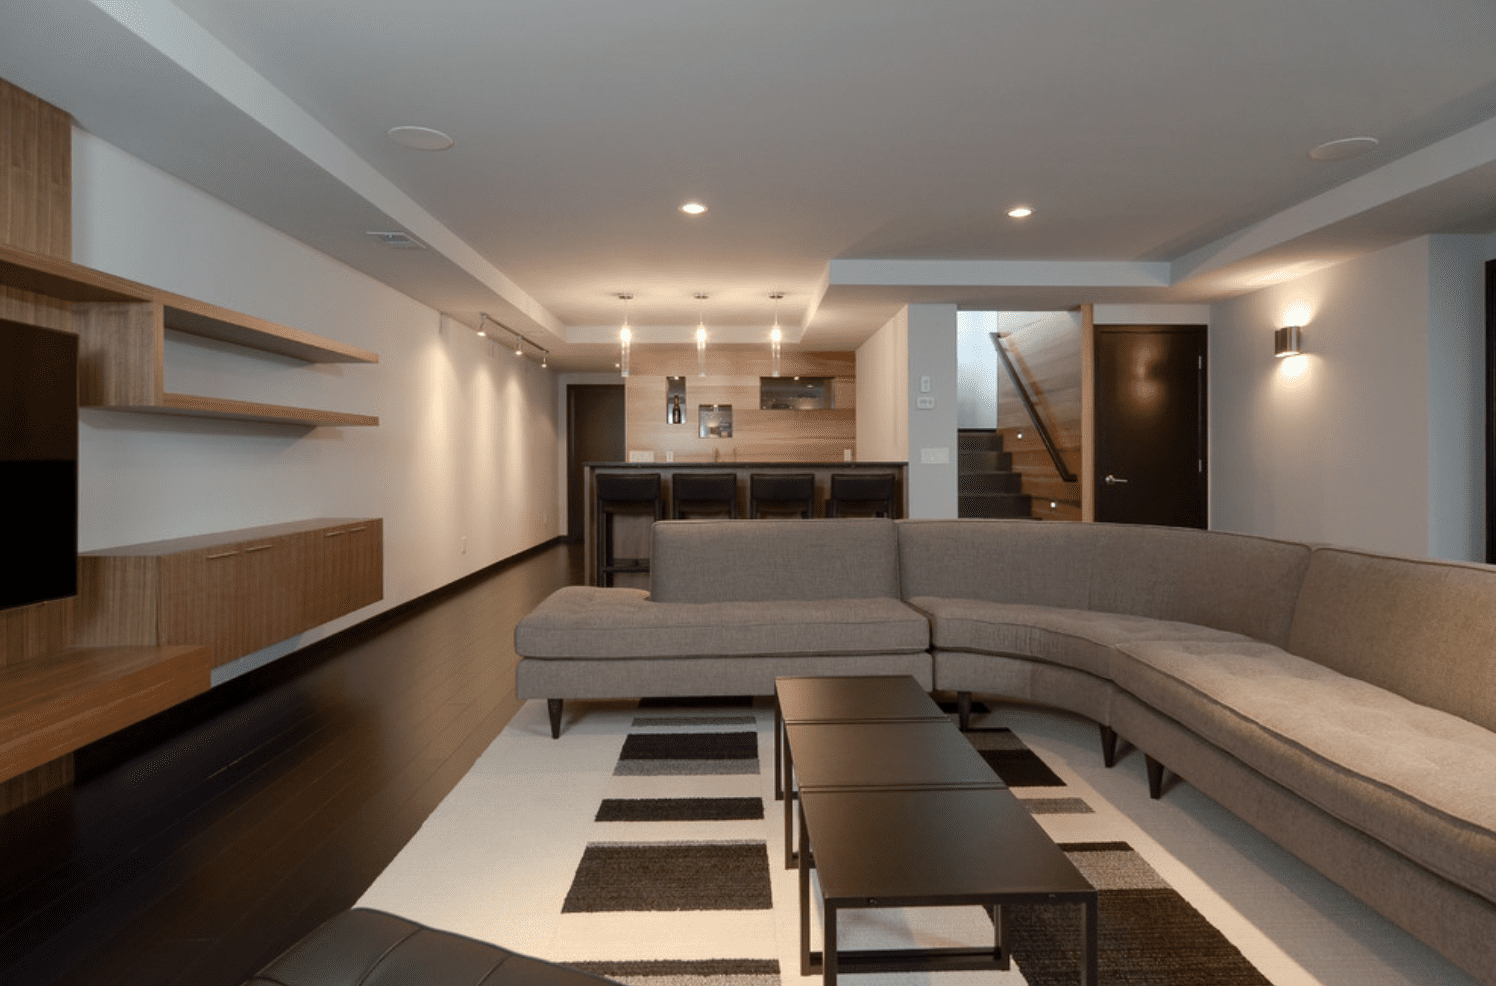 A basement lit with a combination of scones, pendant lights, and recessed lighting